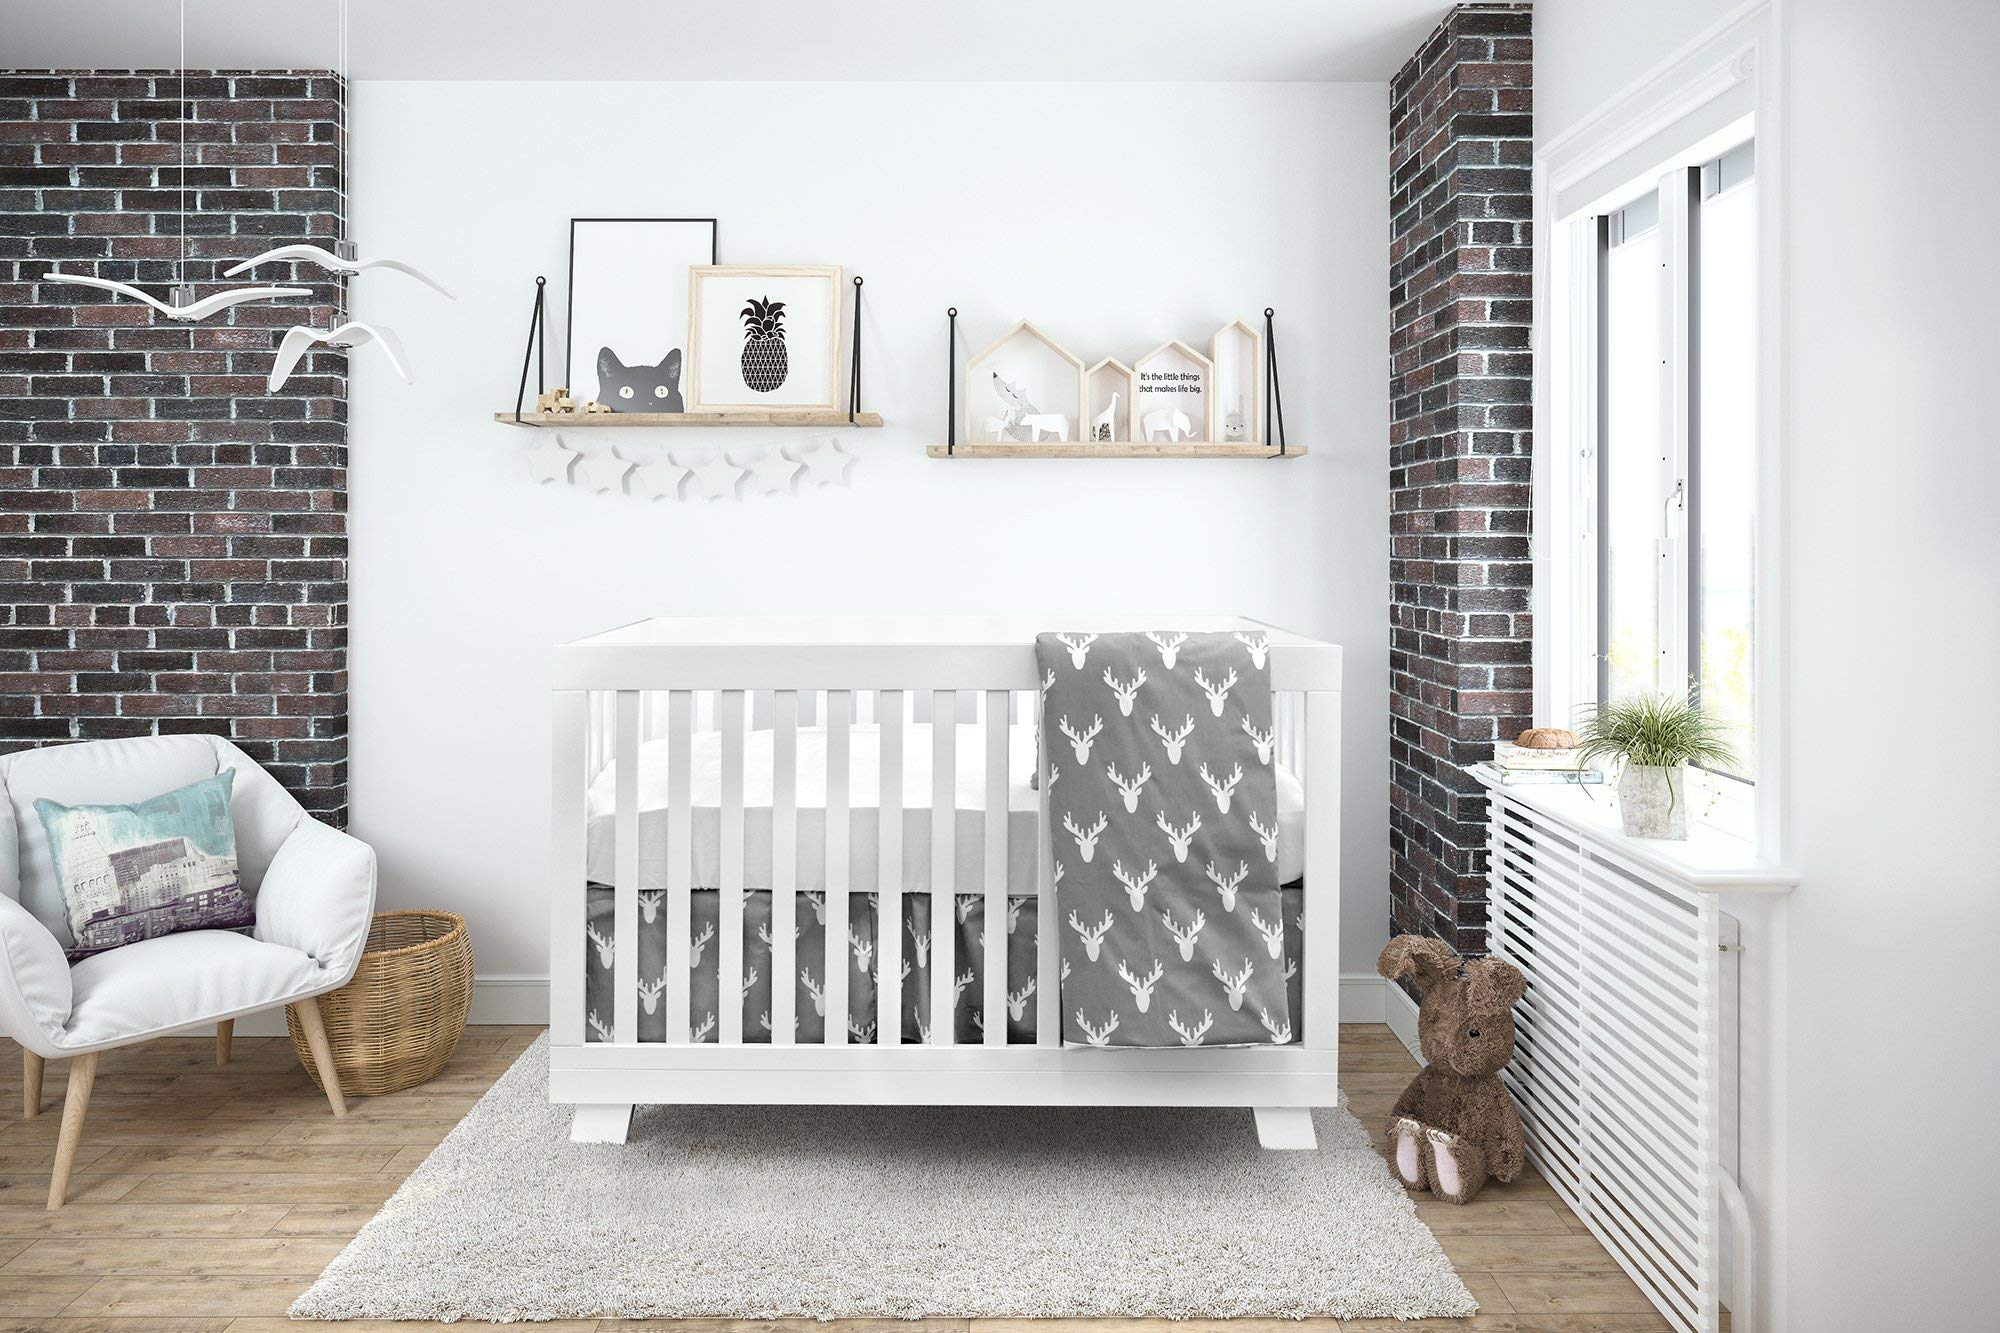 Boobeyeh Baby Crib Bedding for Girls and Boys, Gray and White Moose Design, 4-Piece Set Includes Fitted Sheet, Crib Comforter, Comforter Cover, Skirt